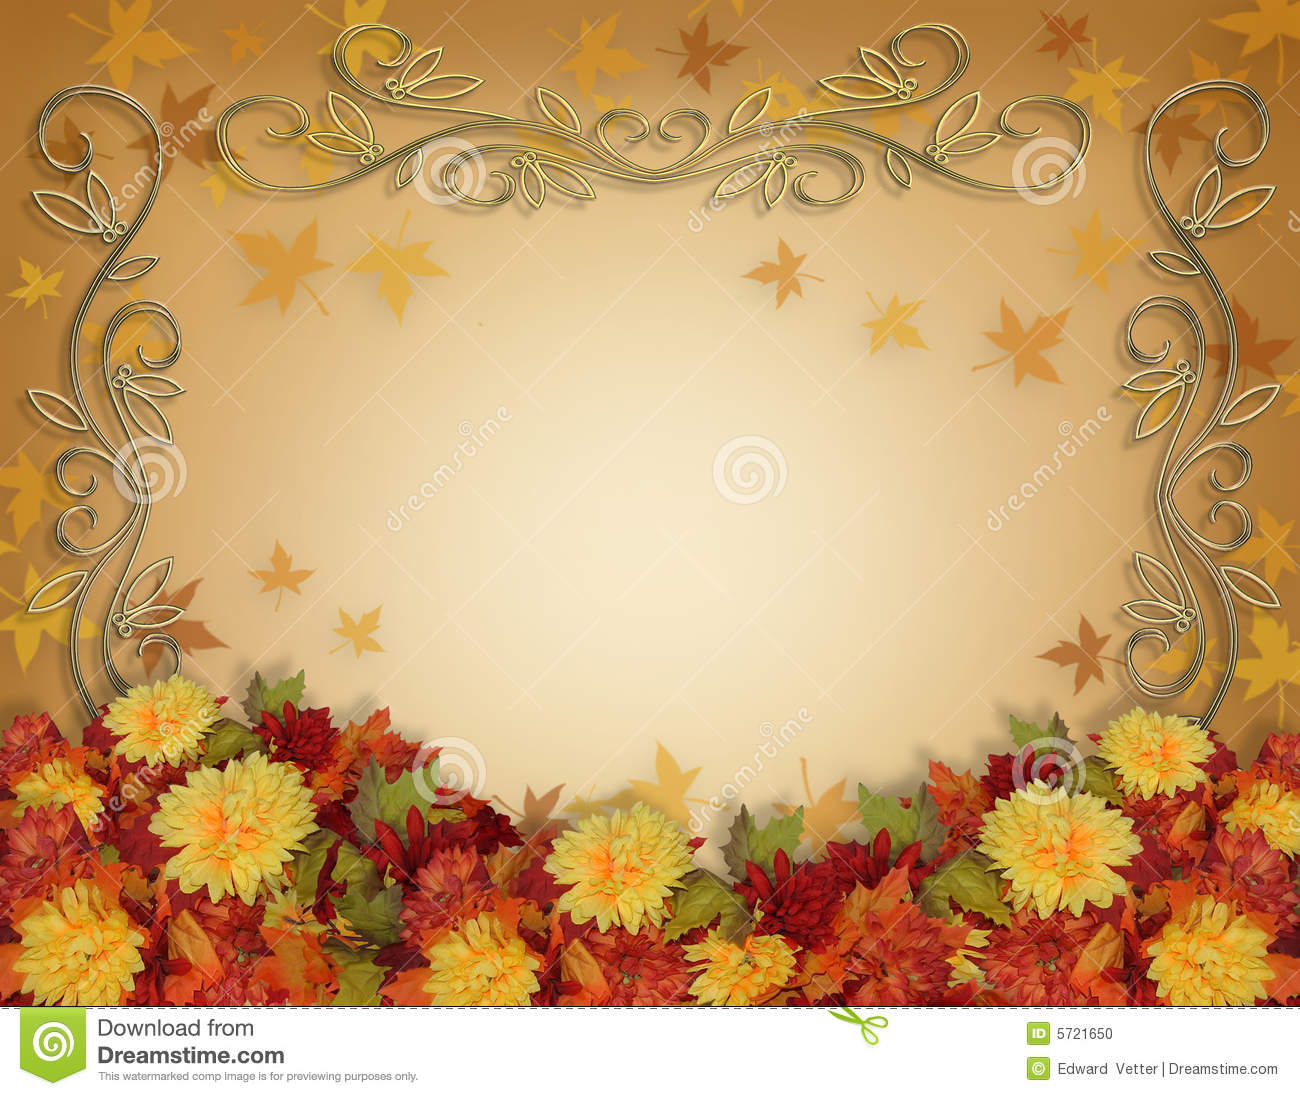 Fall Wedding Invitation Background Designs Fall Best Home And House Interior Design Ideas